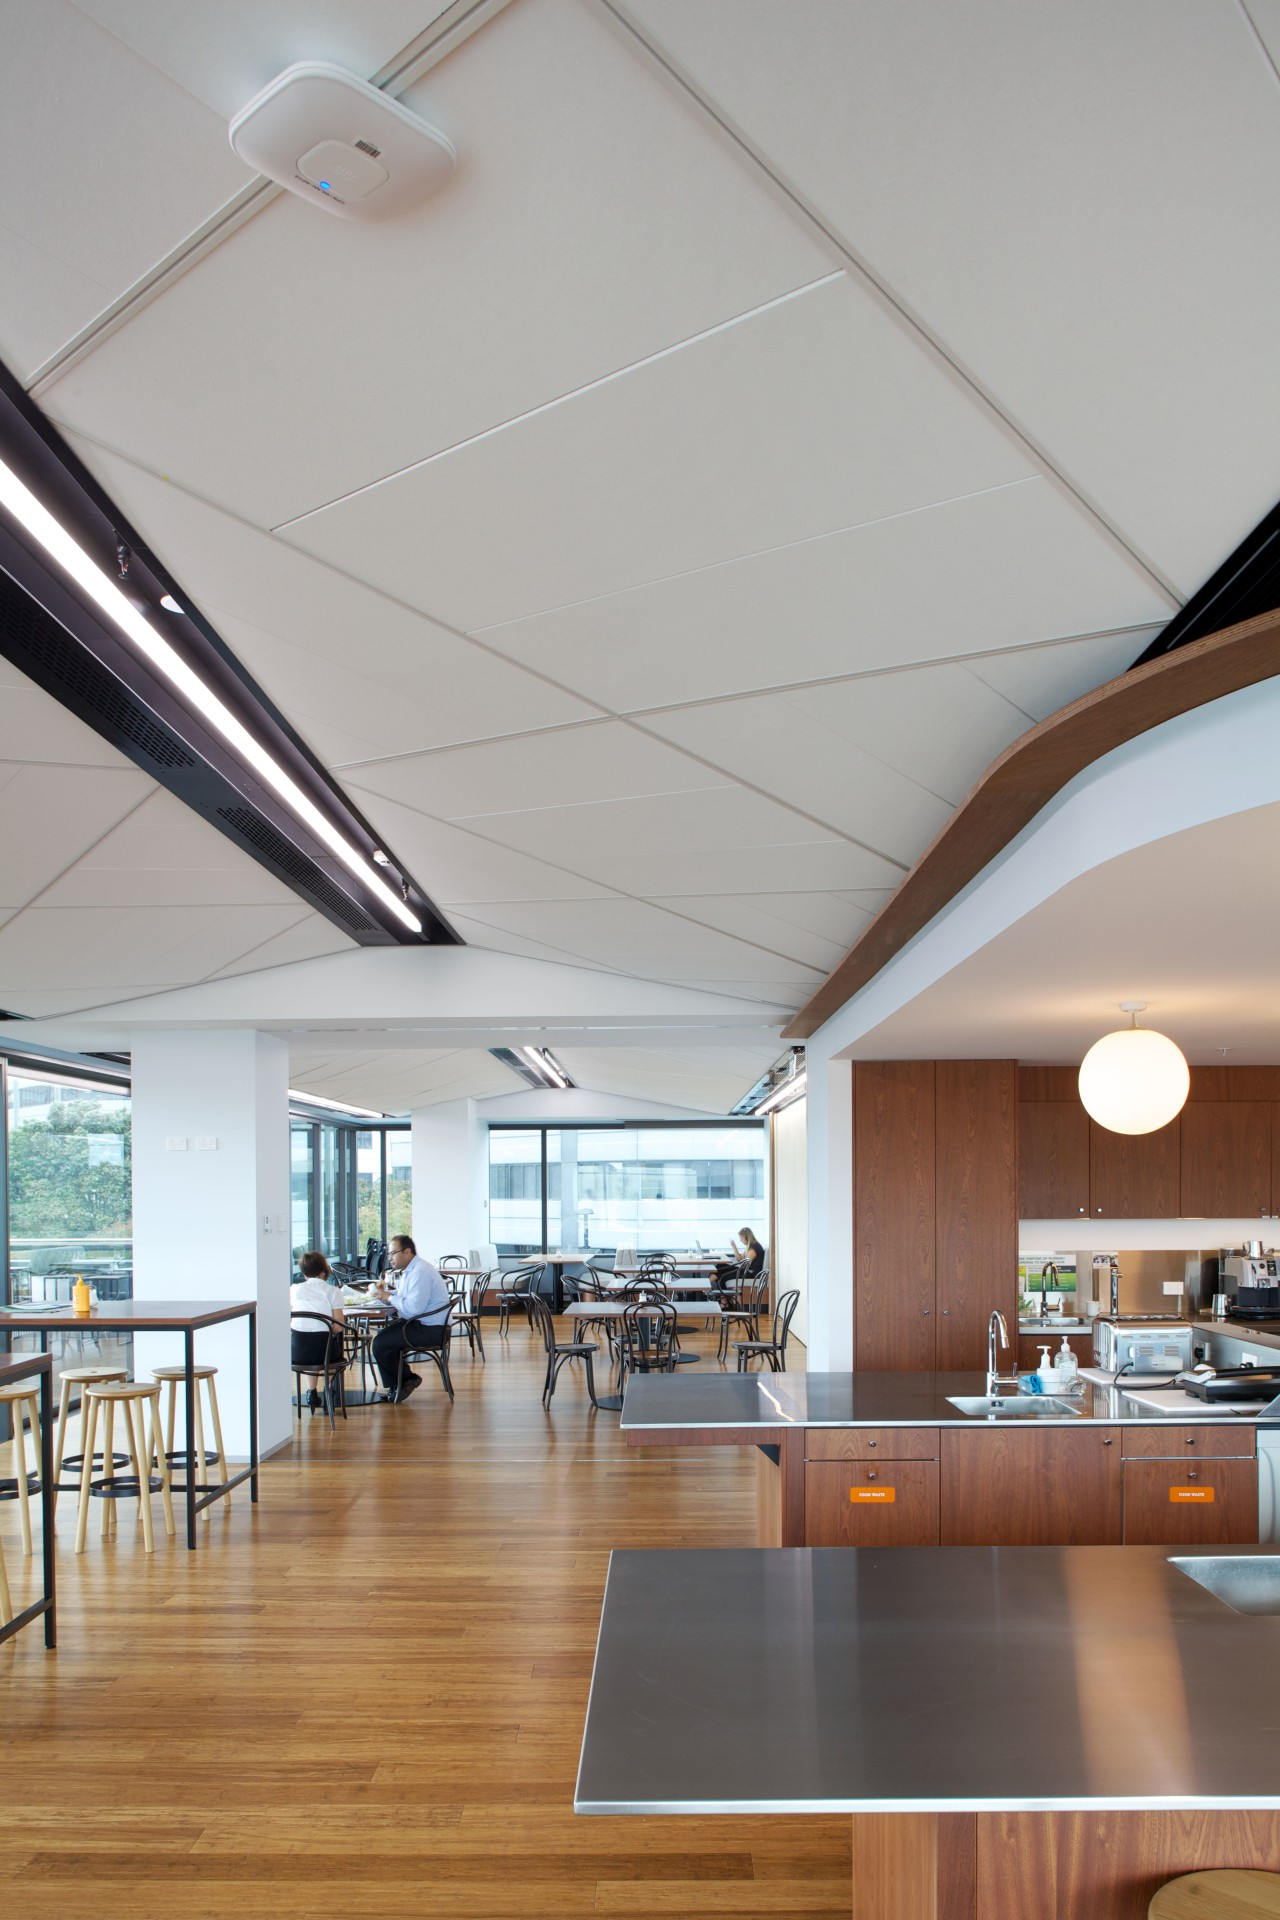 A dramatic ceiling system for the new genesis architecture, ceiling, daylighting, interior design, gray